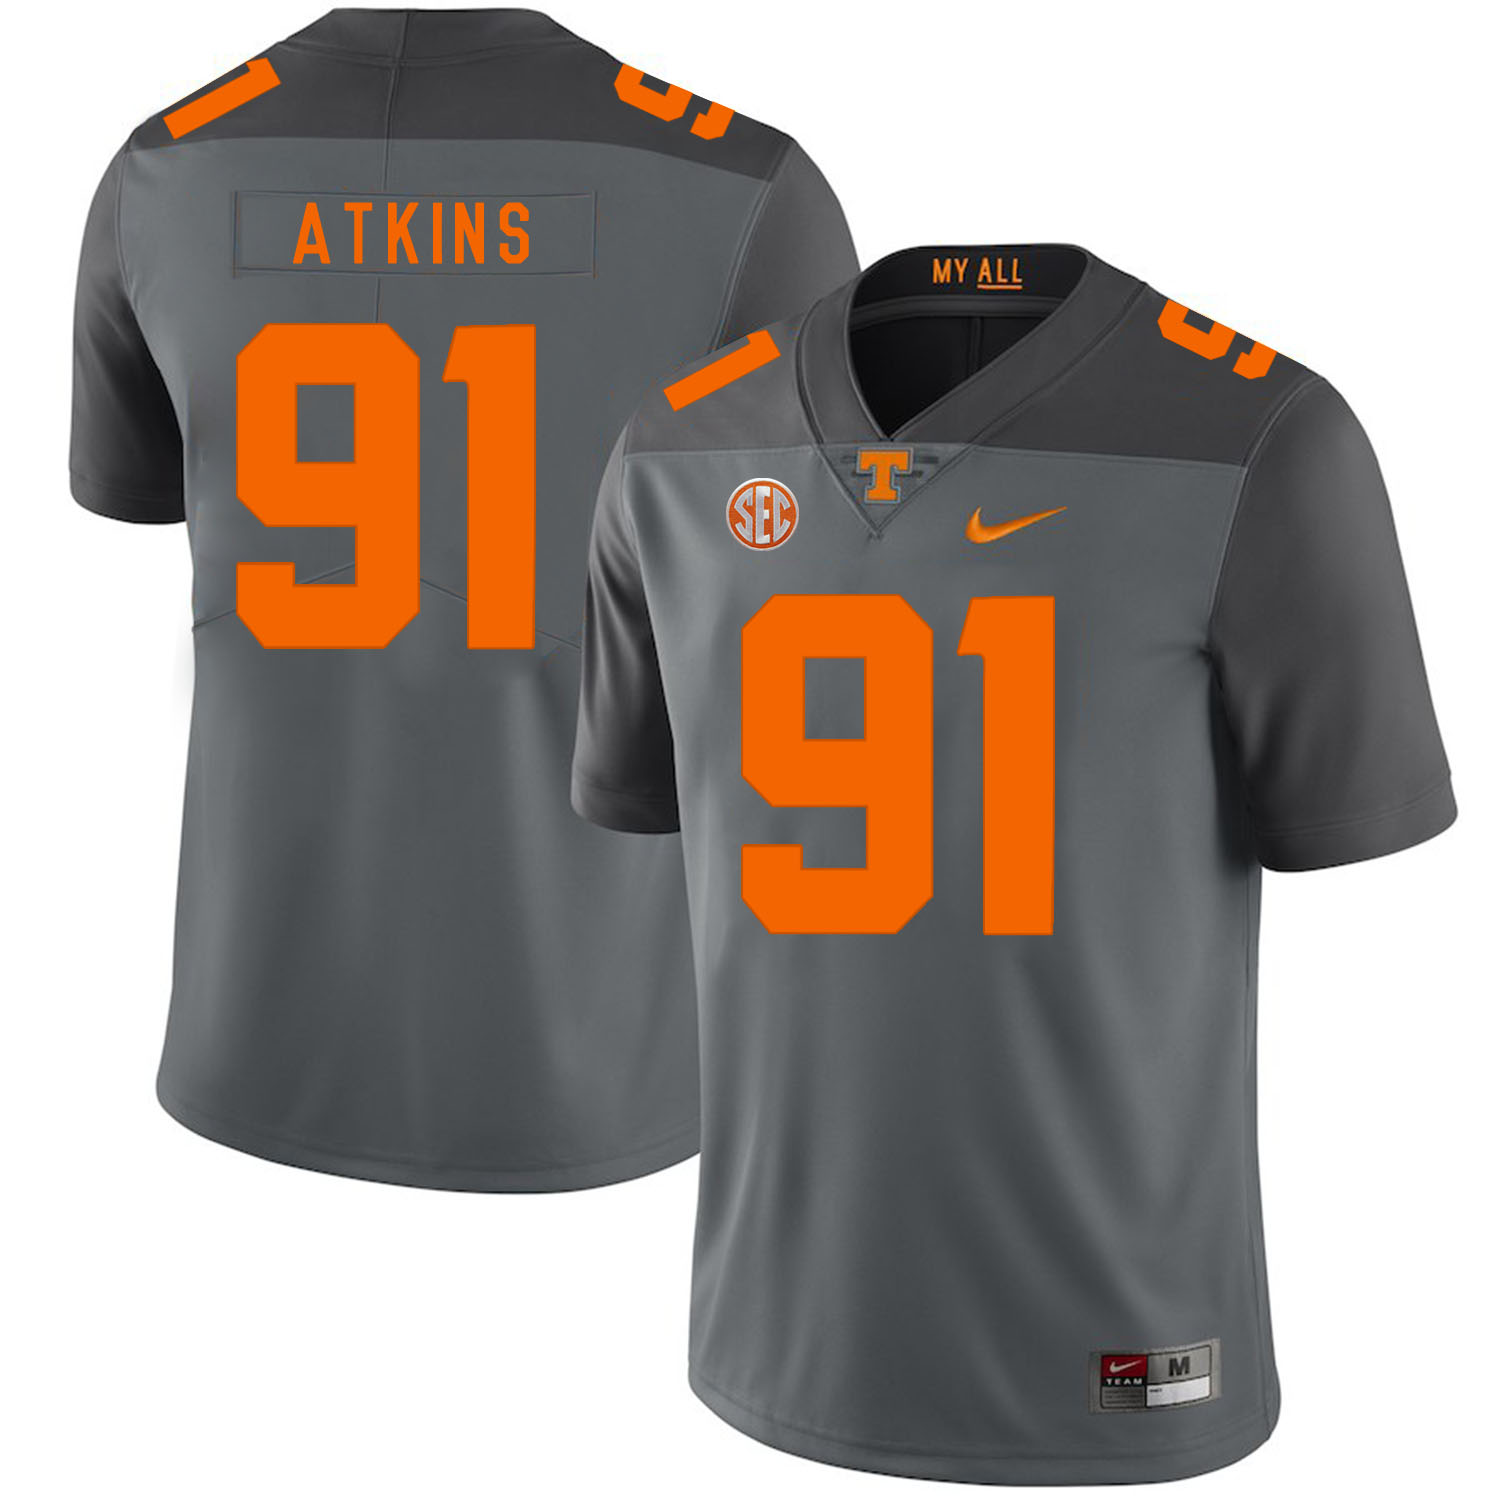 Tennessee Volunteers 91 Doug Atkins Gray Nike College Football Jersey